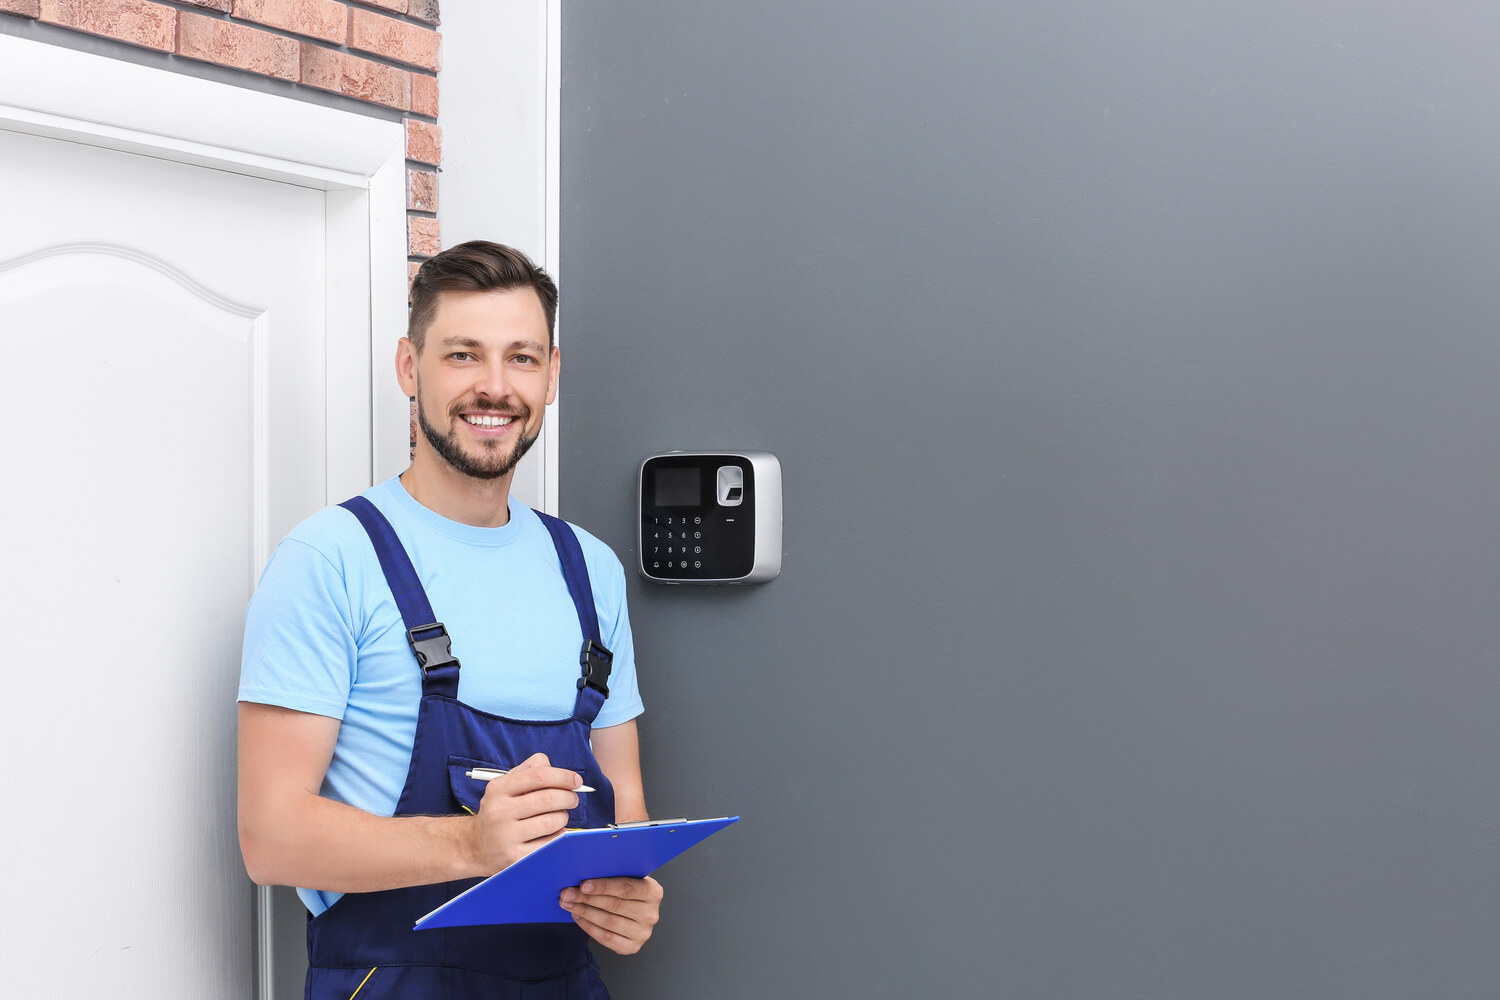 What Families Need to Look for in a Security System